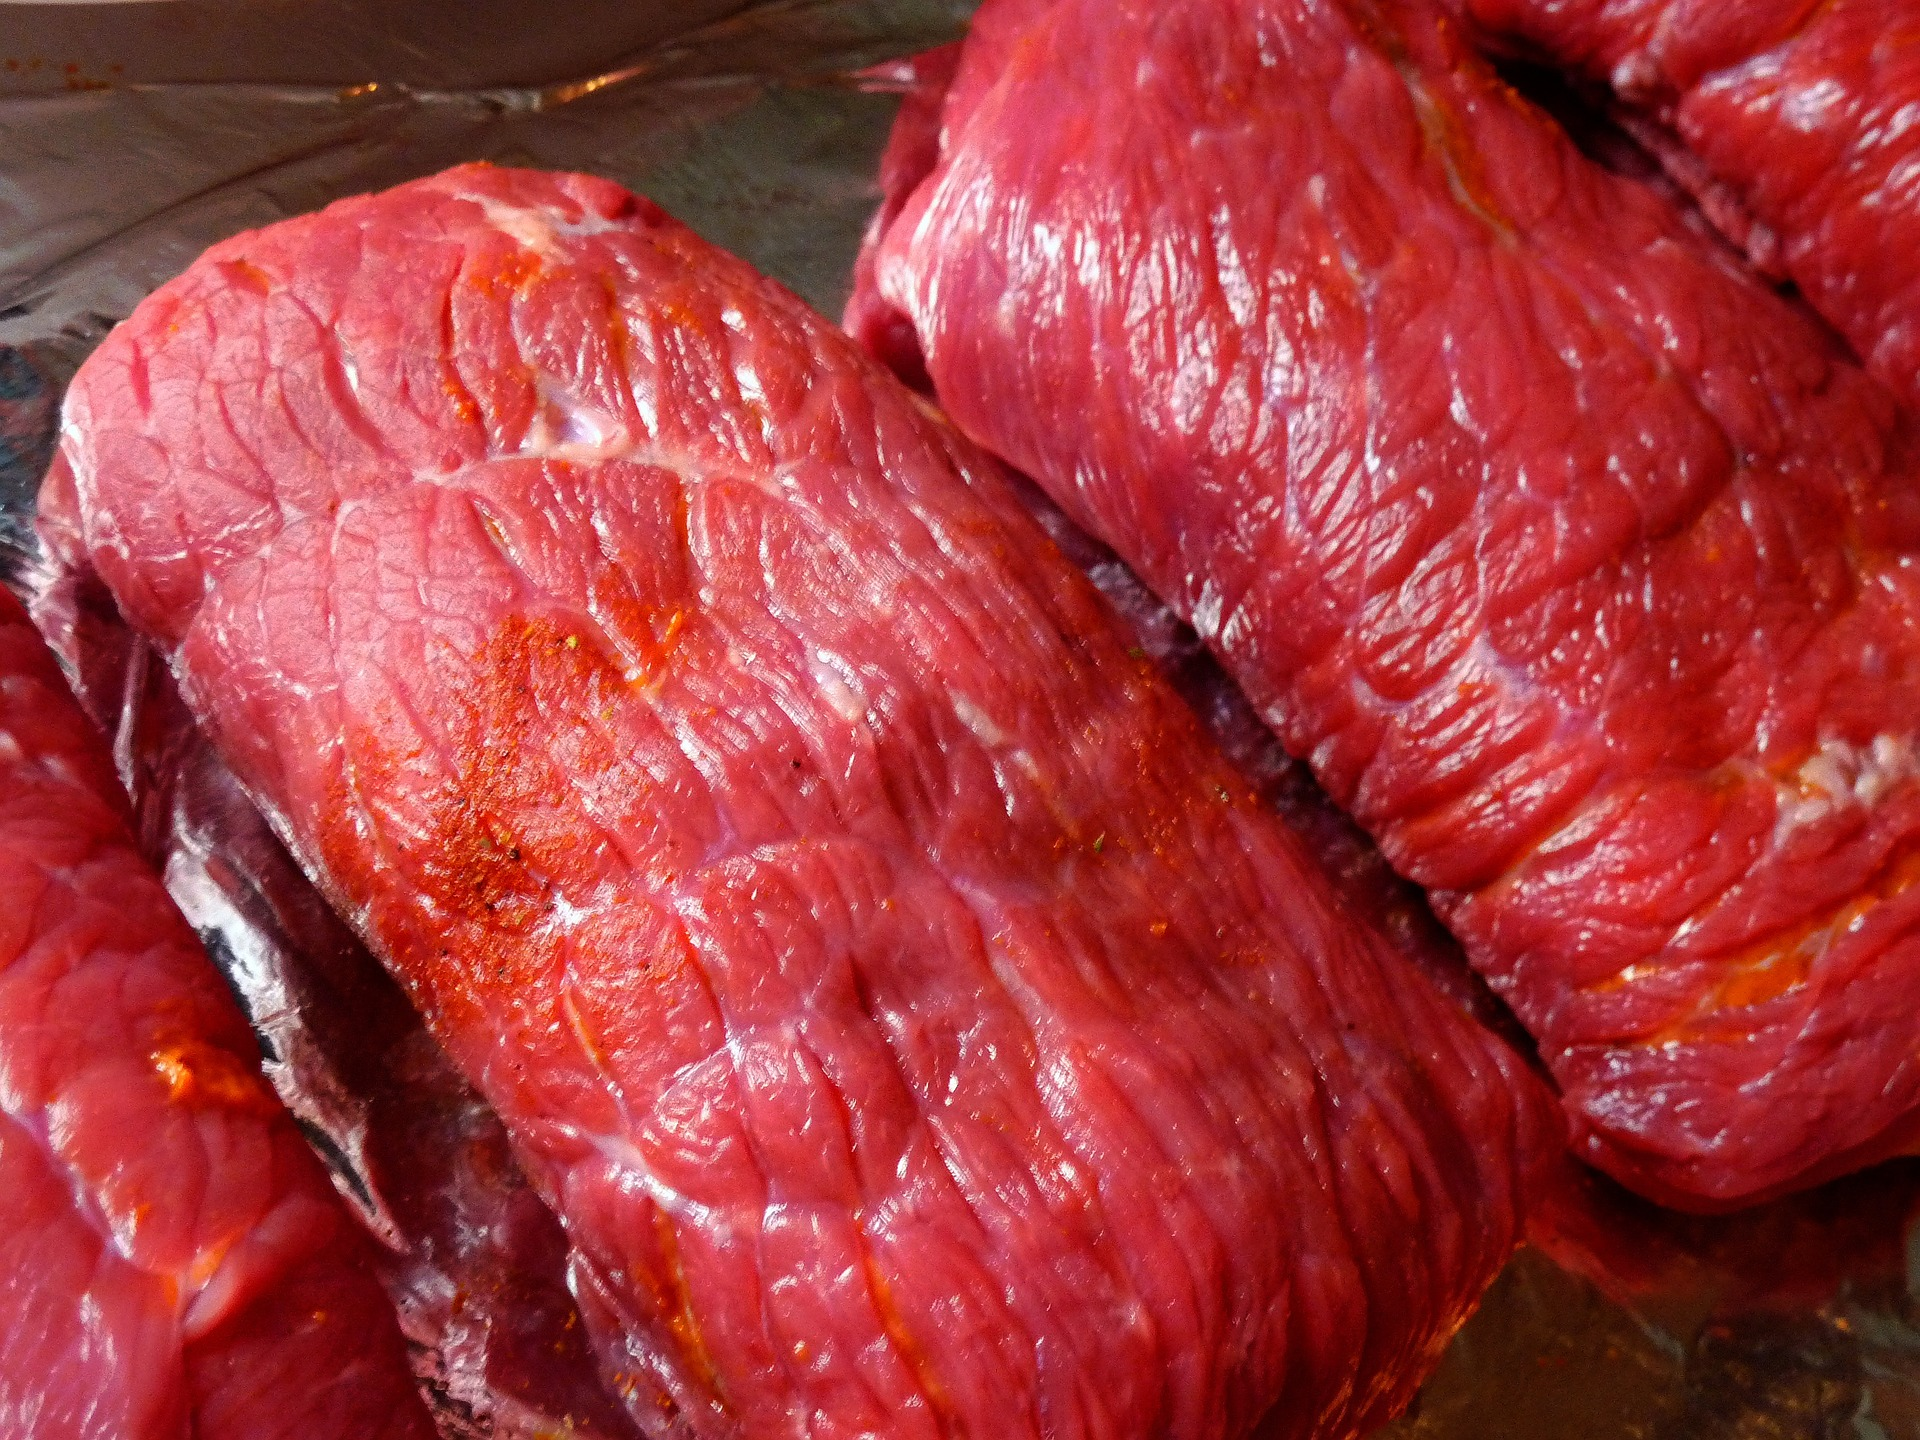 Customers, businesses appreciate locally sourced meat